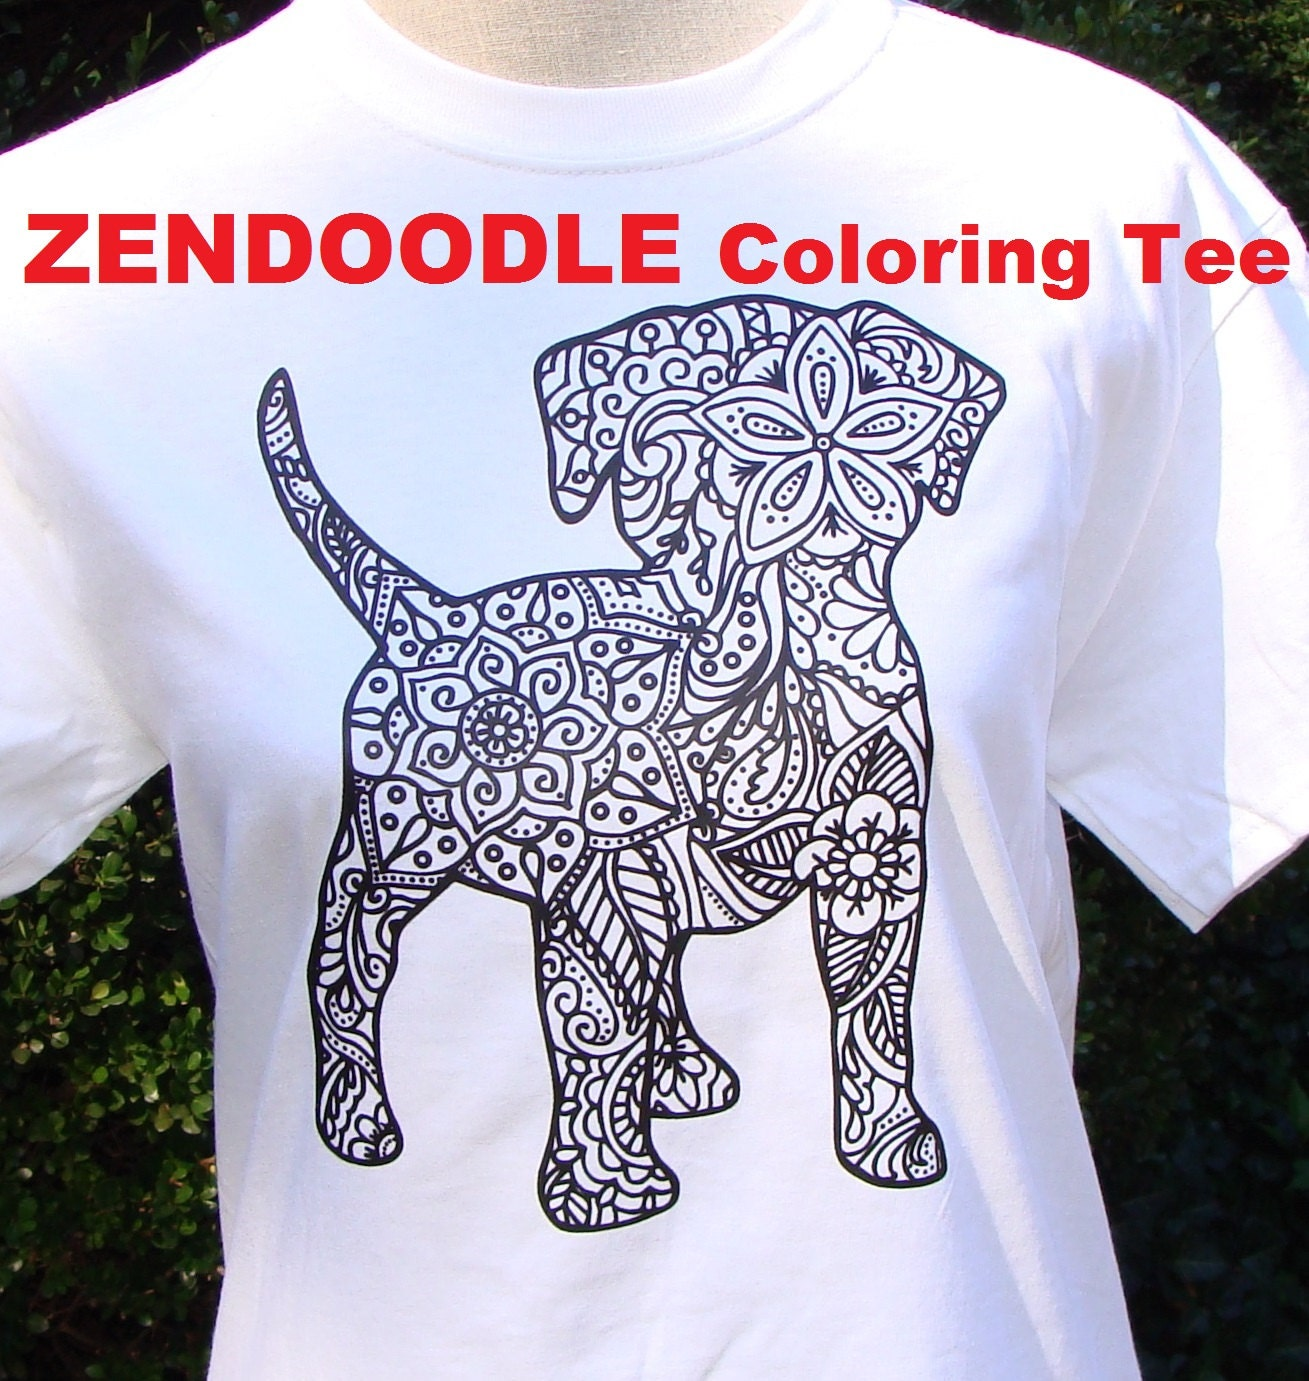 puppy dog graphic tee zendoodle kid coloring page t